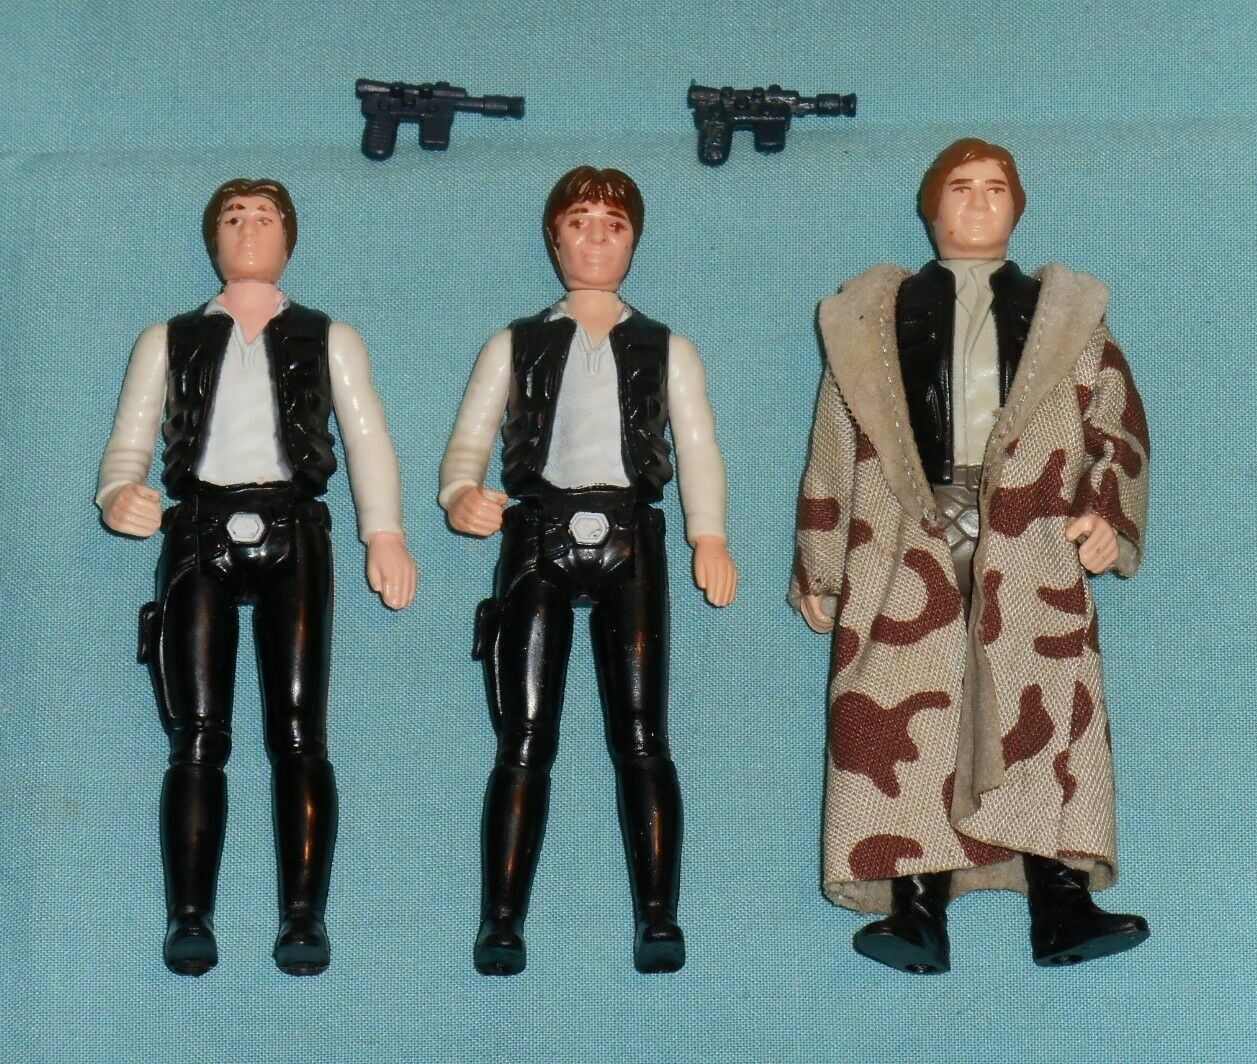 Vintage STAR WARS FIGURE LOT  192 Han Solo large + small head + Han Trenchcoat